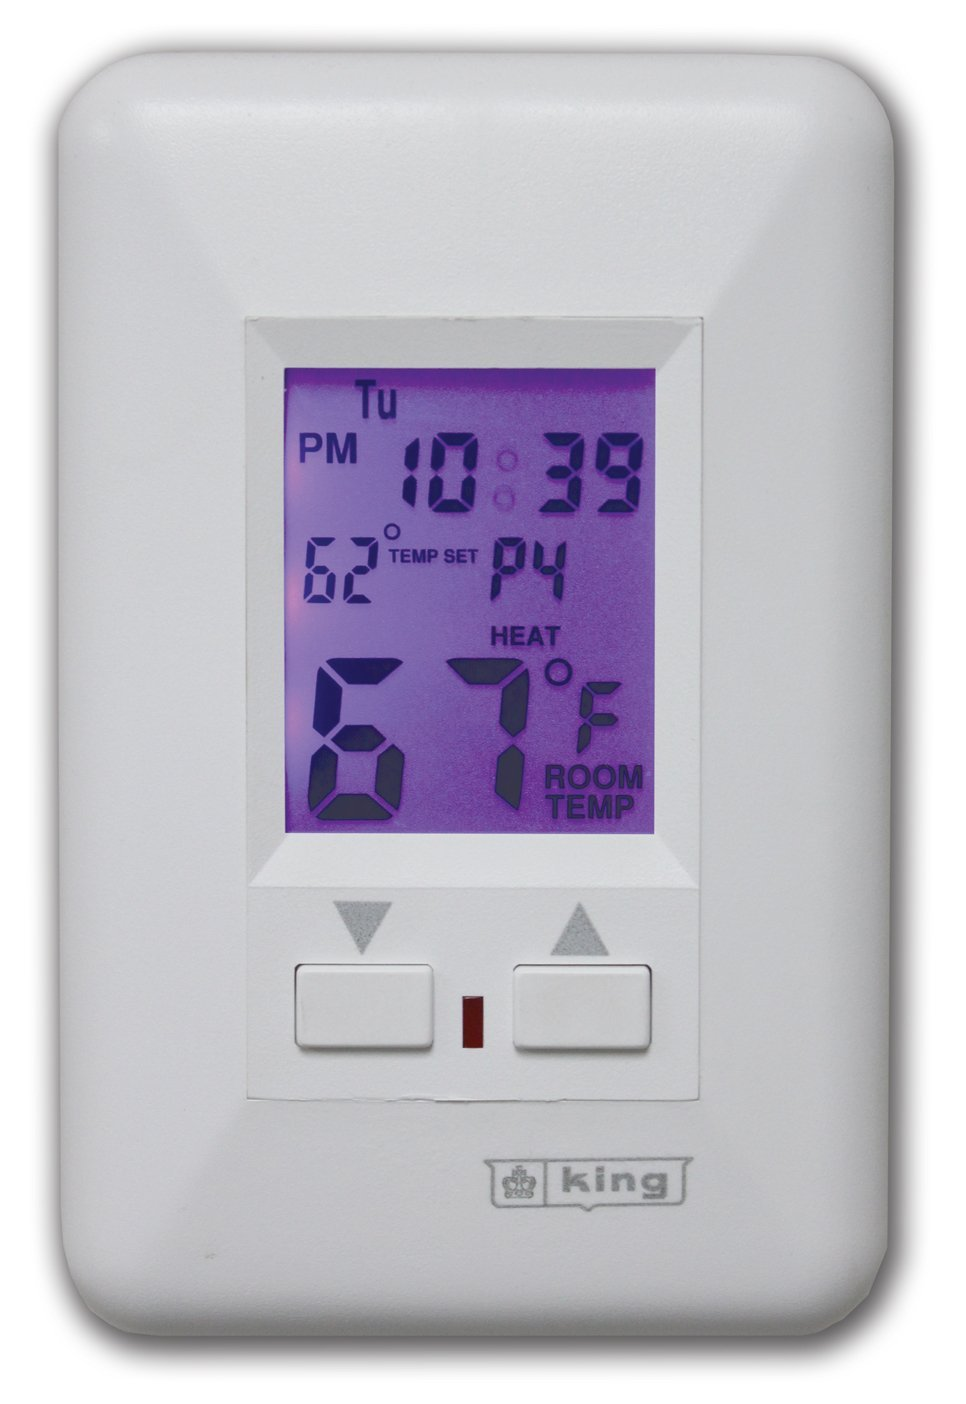 Details about King ESP230-R Electronic Line-Voltage Programmable  Thermostat, White , New, Free